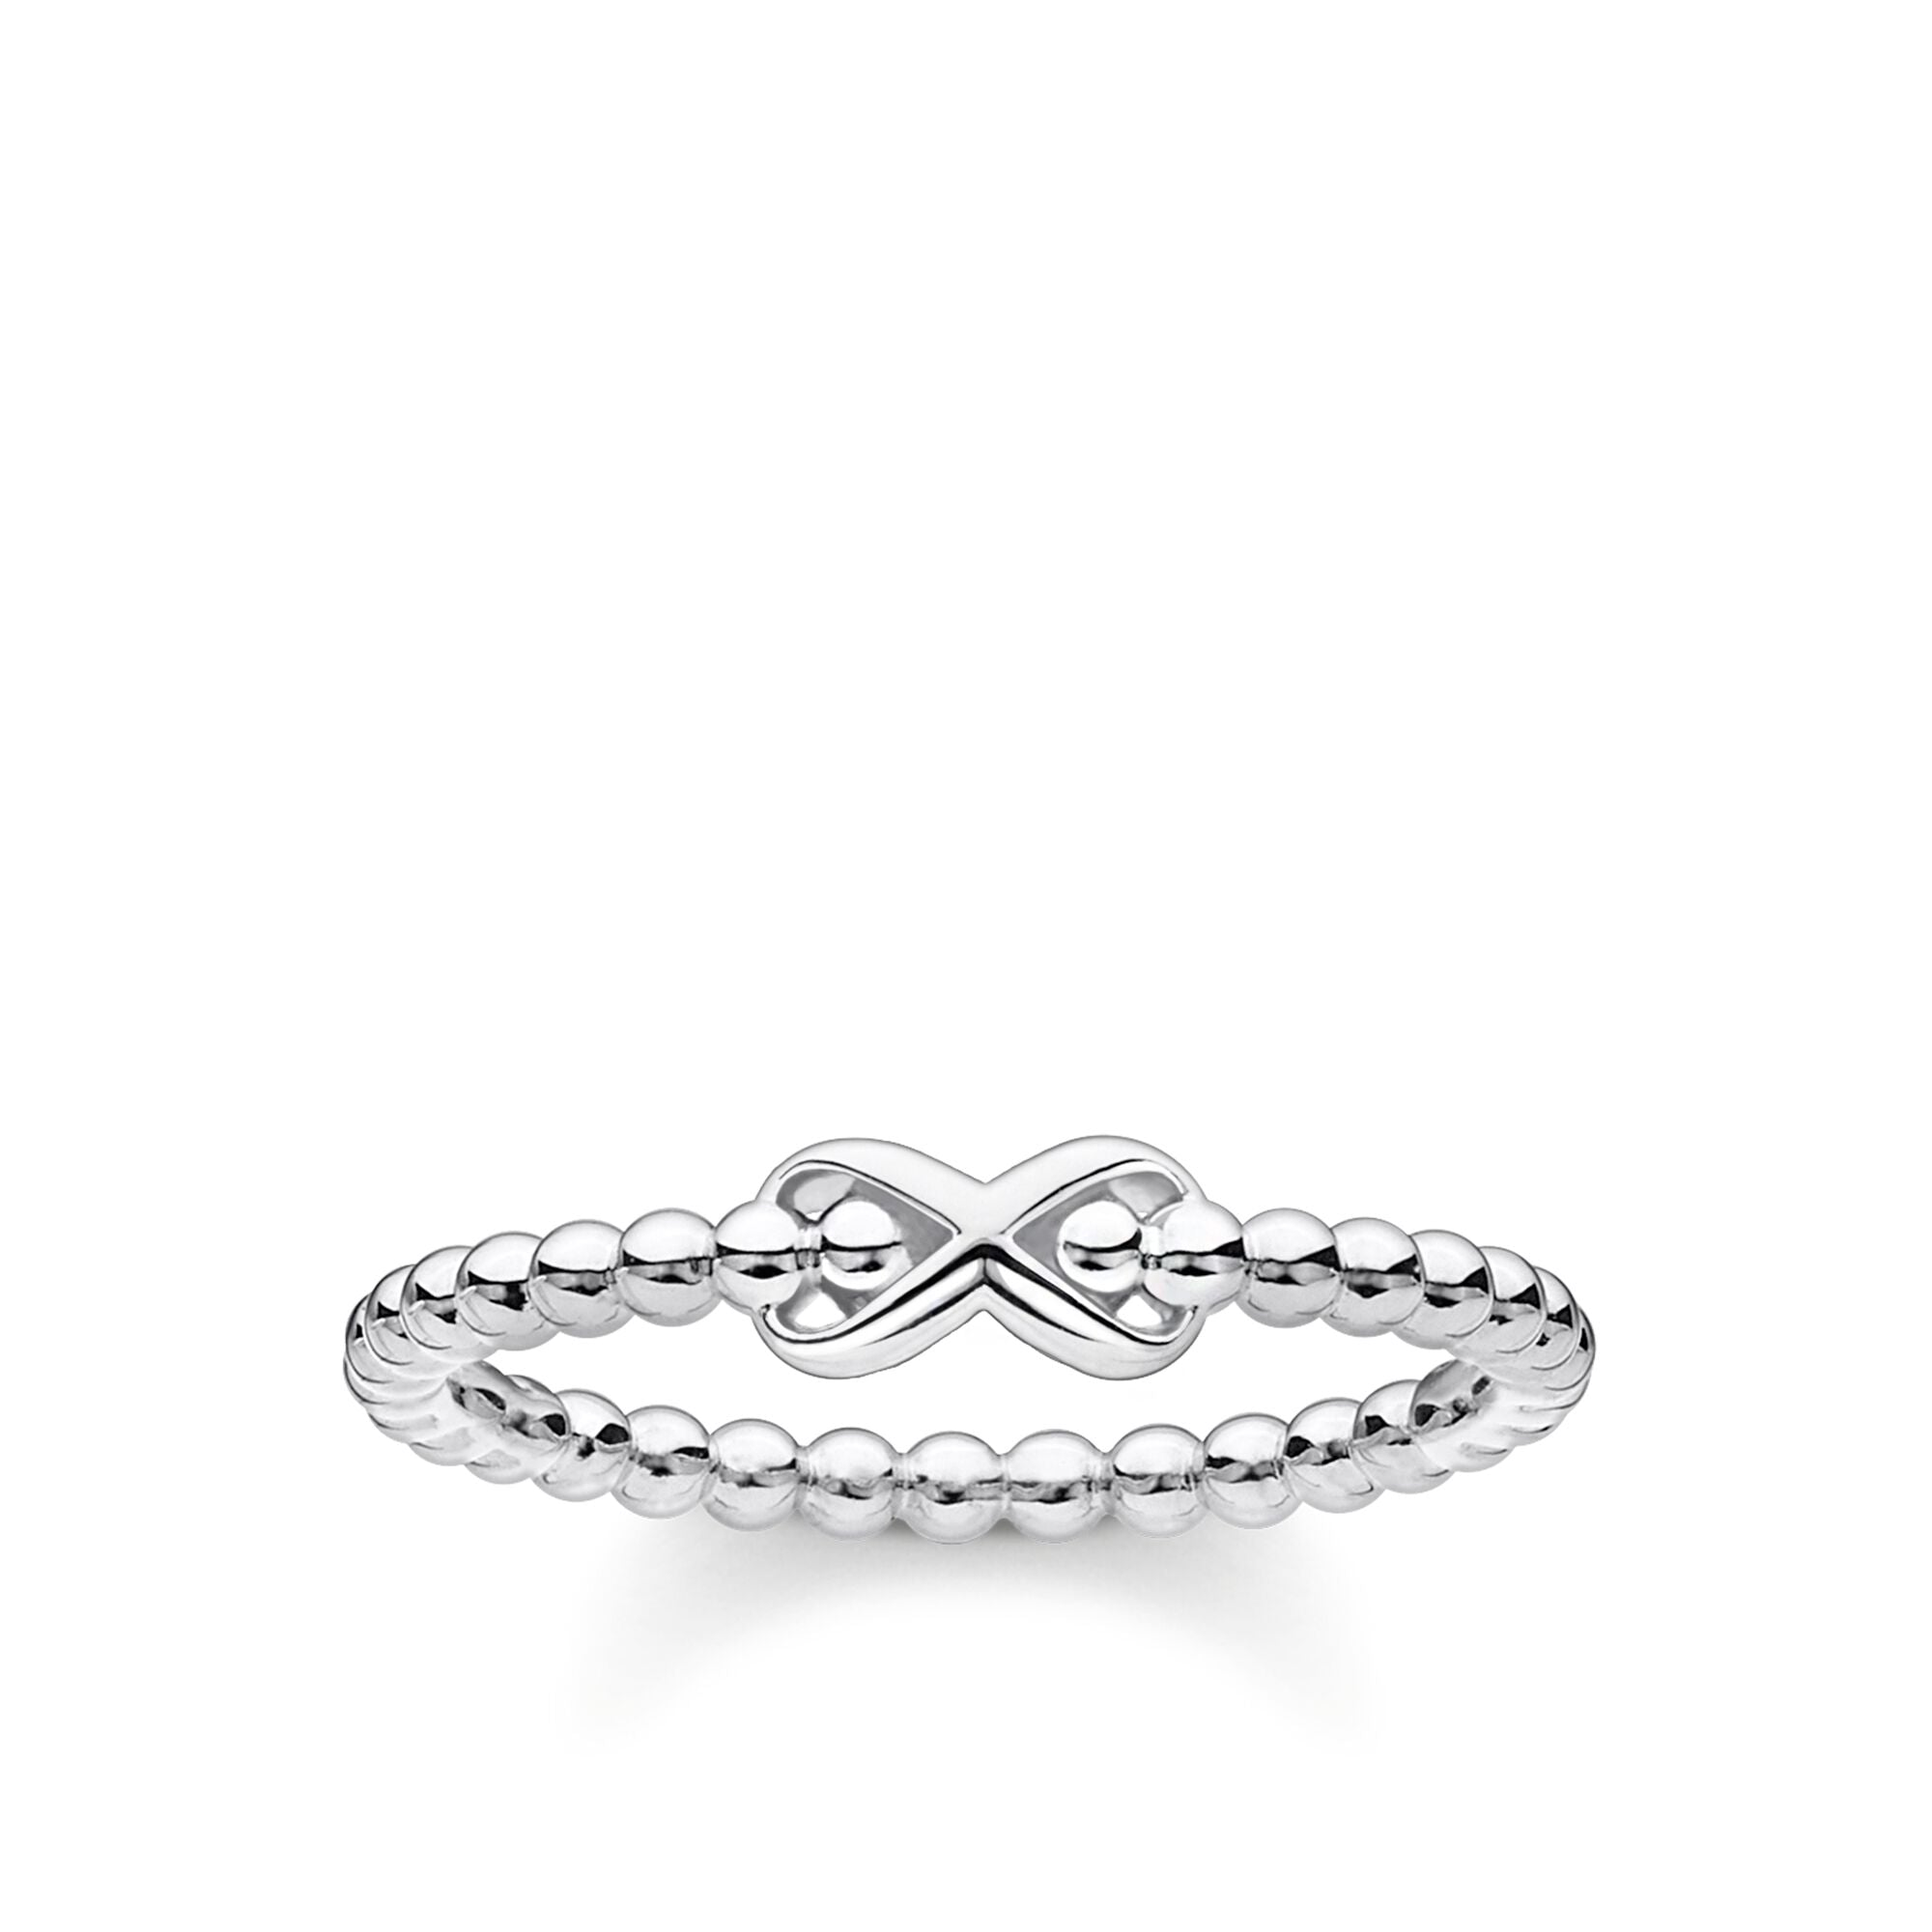 STERLING SILVER CHARMING COLLECTION INFINITY BEADED RING SIZE 58